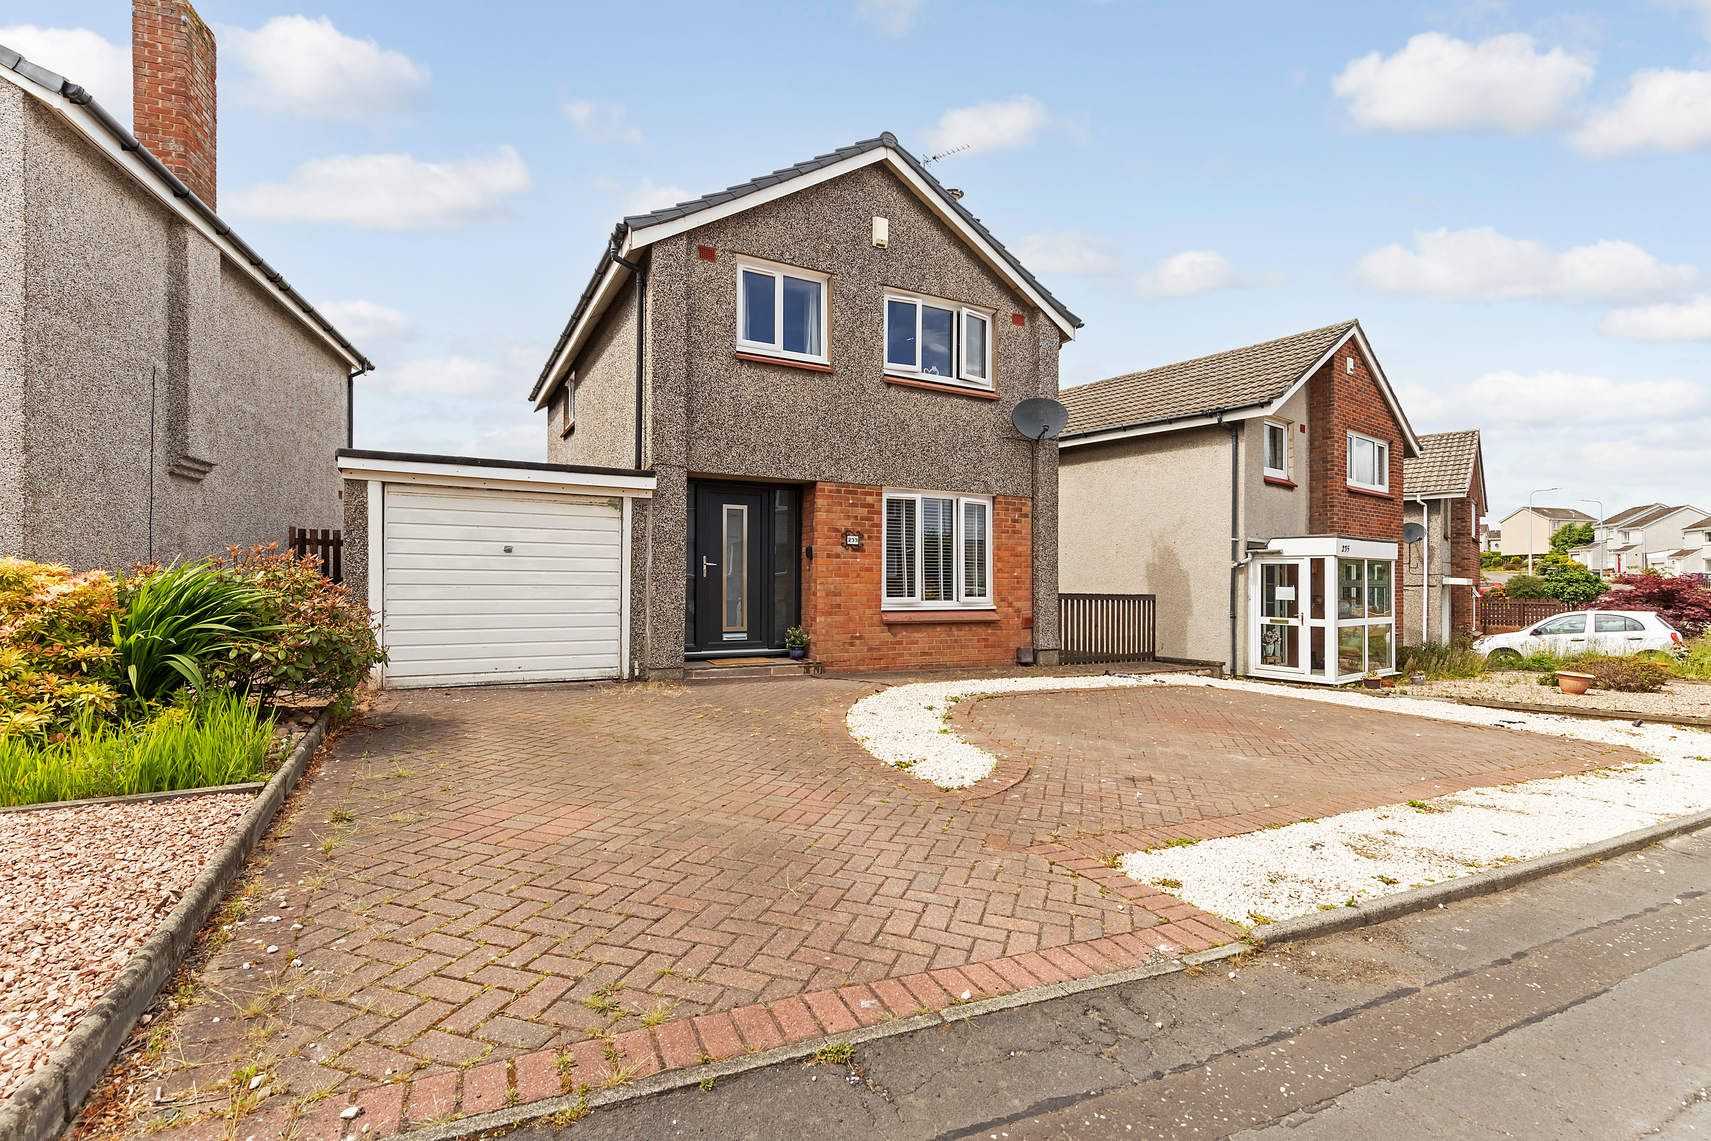 233 Pitcorthie Drive, DUNFERMLINE, KY11 8BS